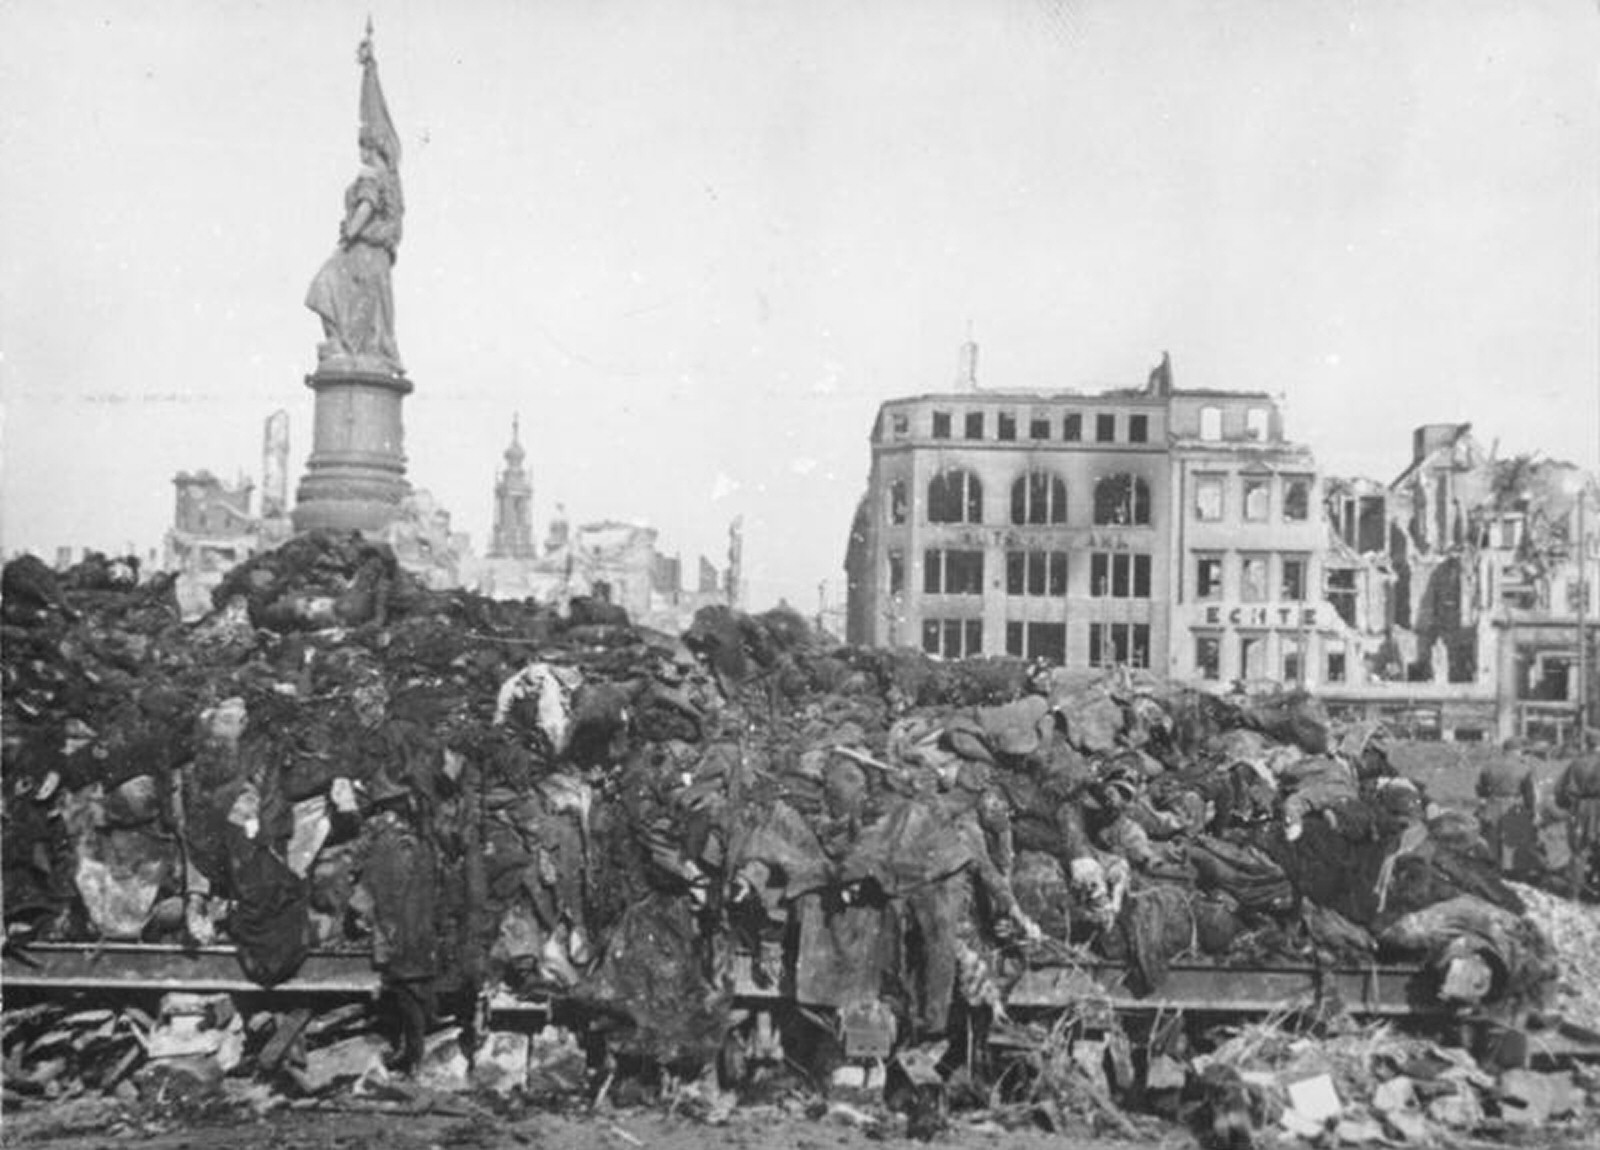 A pile of bodies awaits cremation after the firebombing of Dresden, February 1945